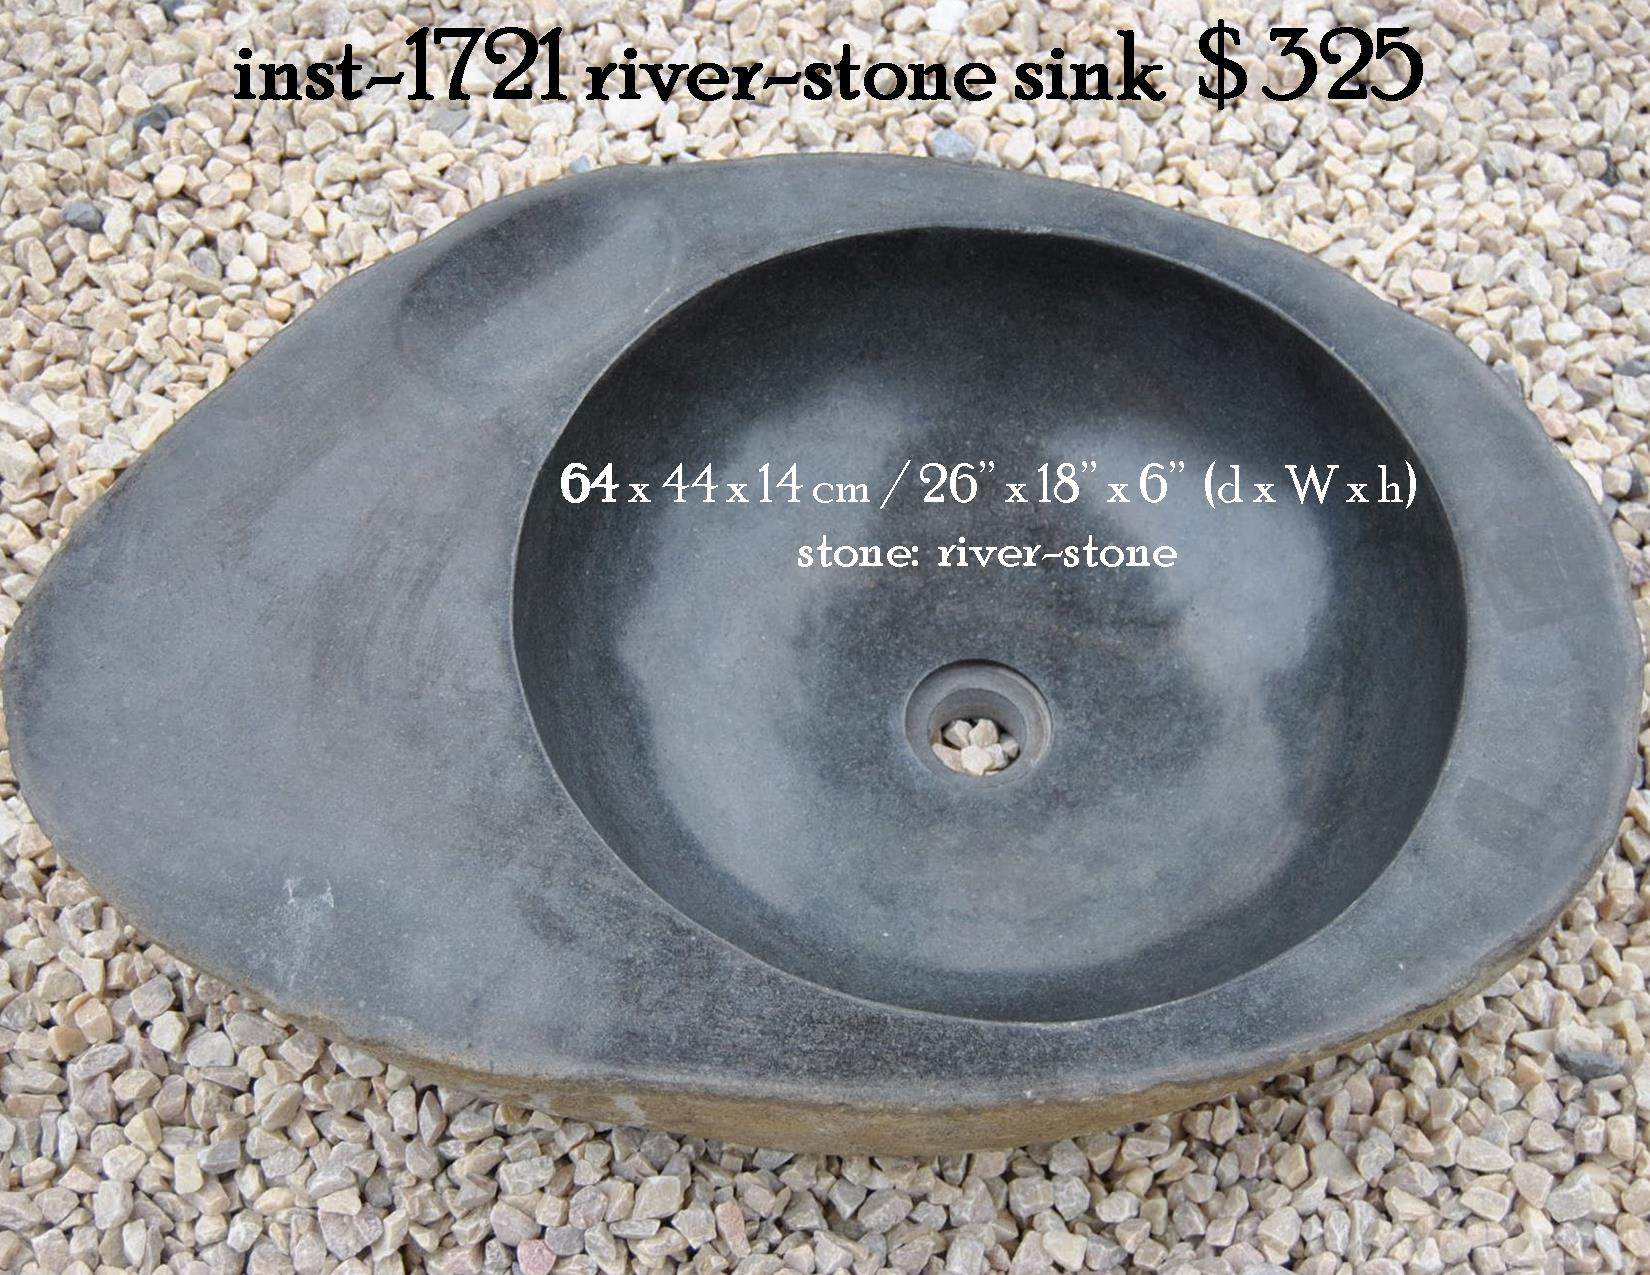 inst-1721 river-stone sink